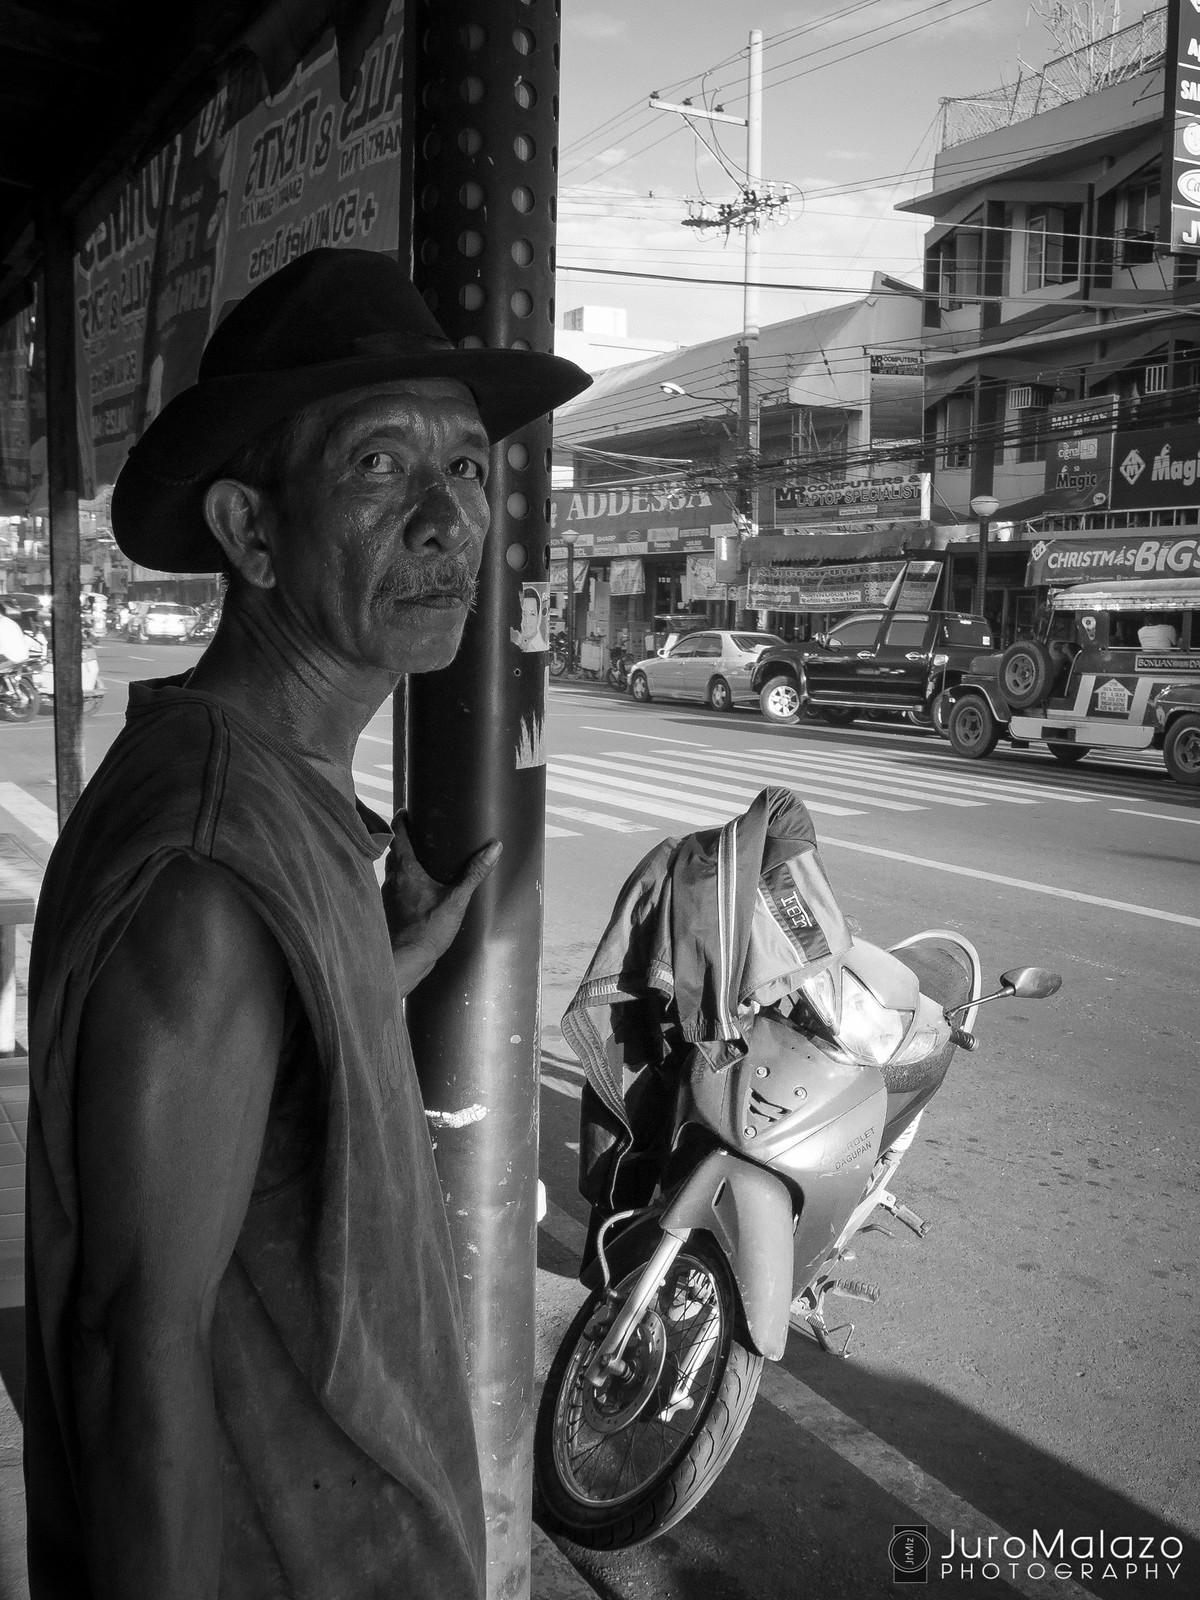 Can't Stare Me Down. (Out on the Streets: Street Photography by Juro Malazo)